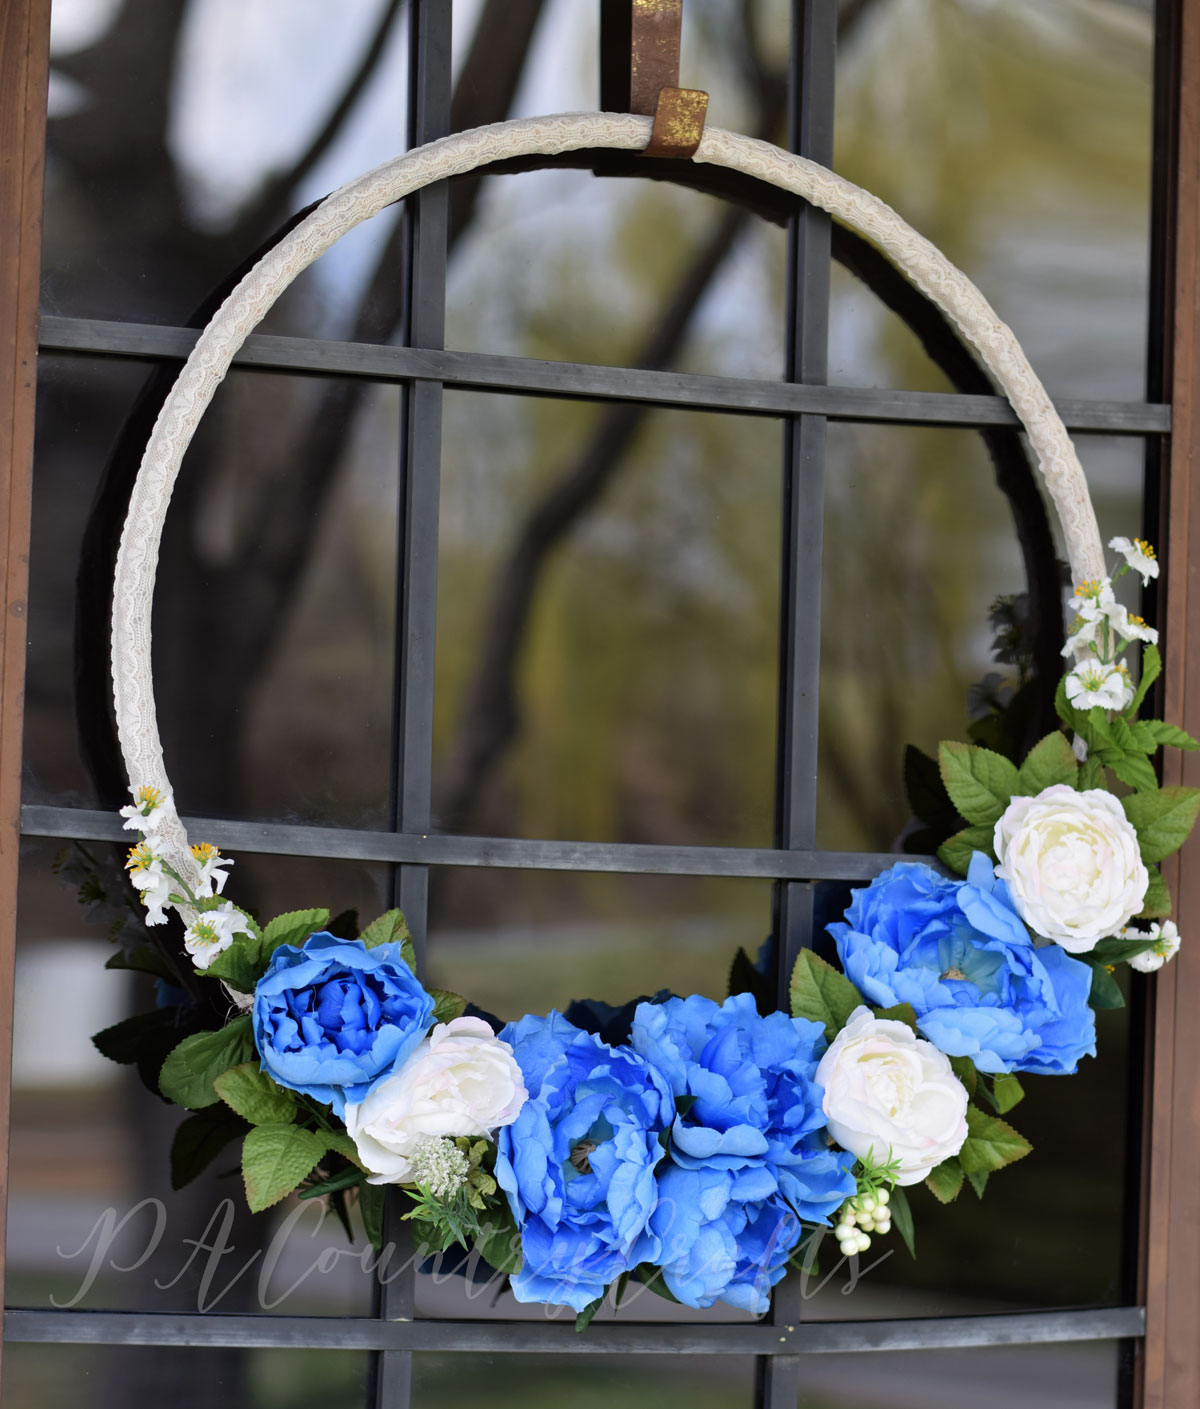 Hula Hoop Wreath Tutorial Pacountrycrafts